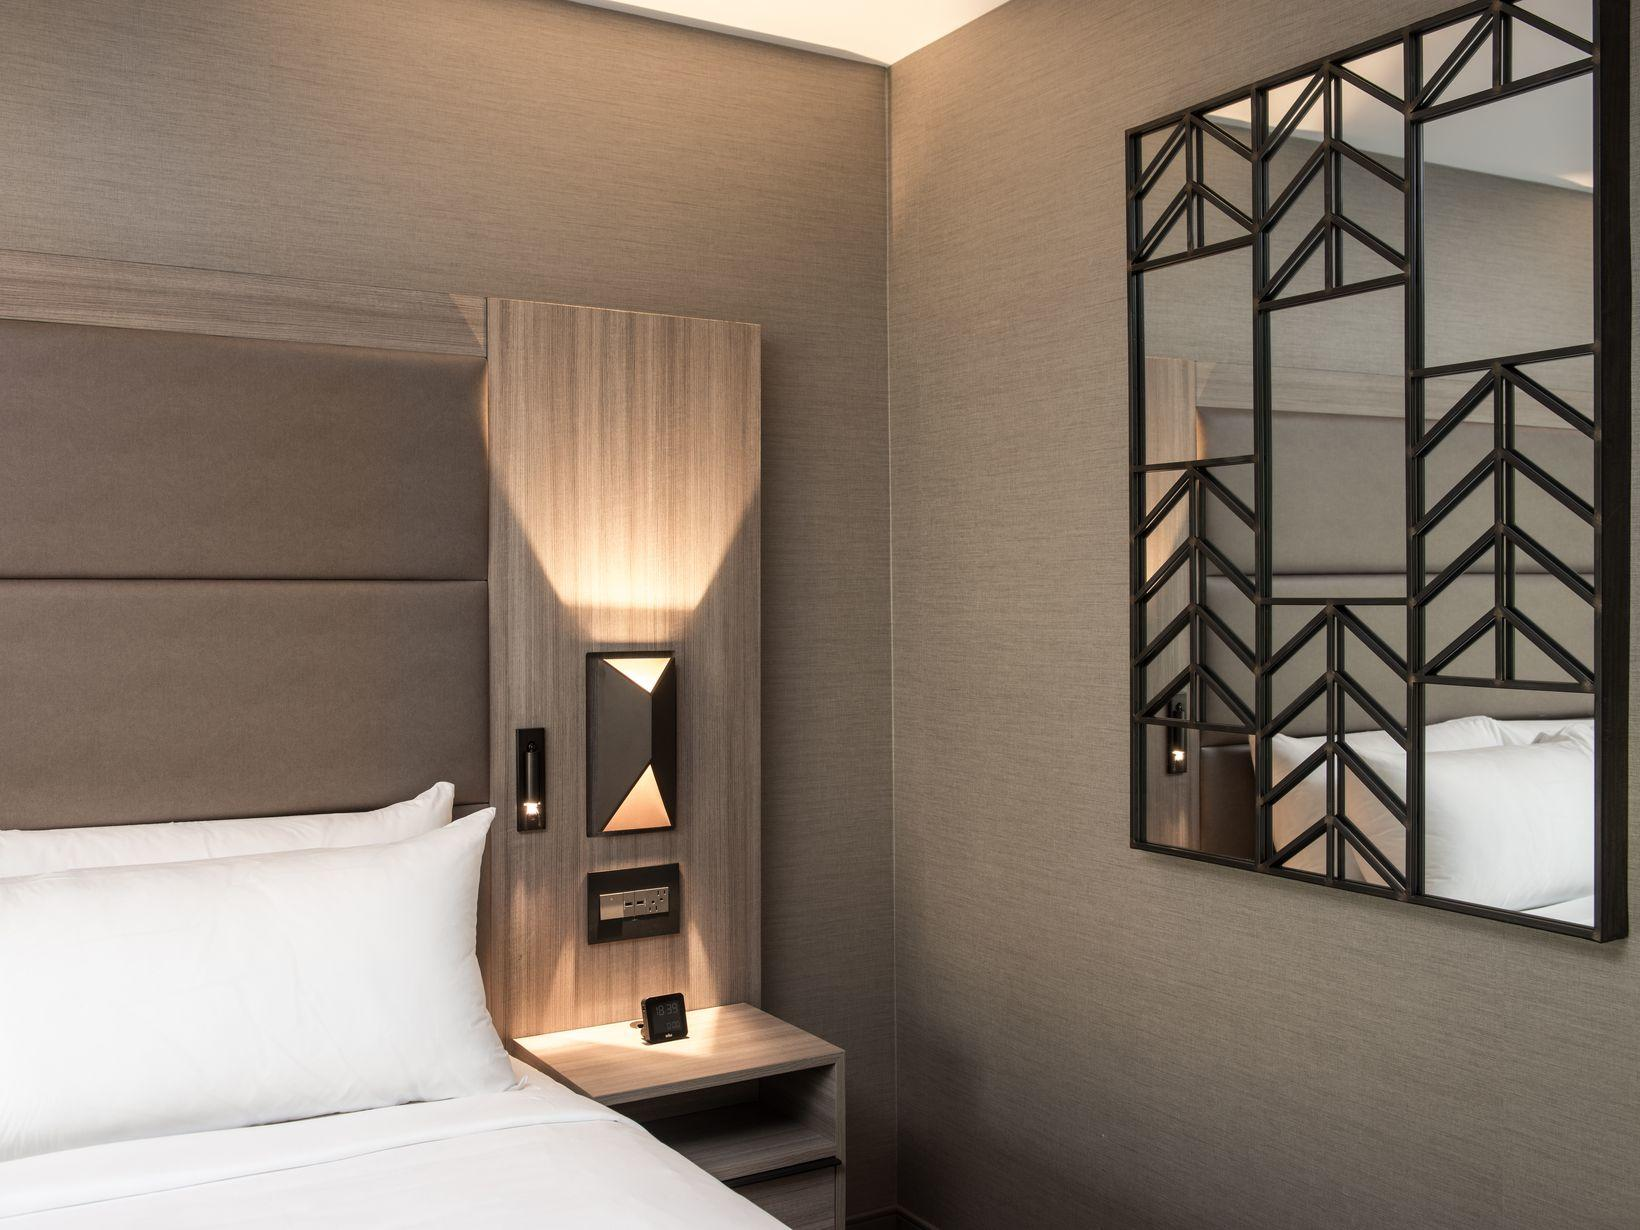 King bed and decorative mirror on wall